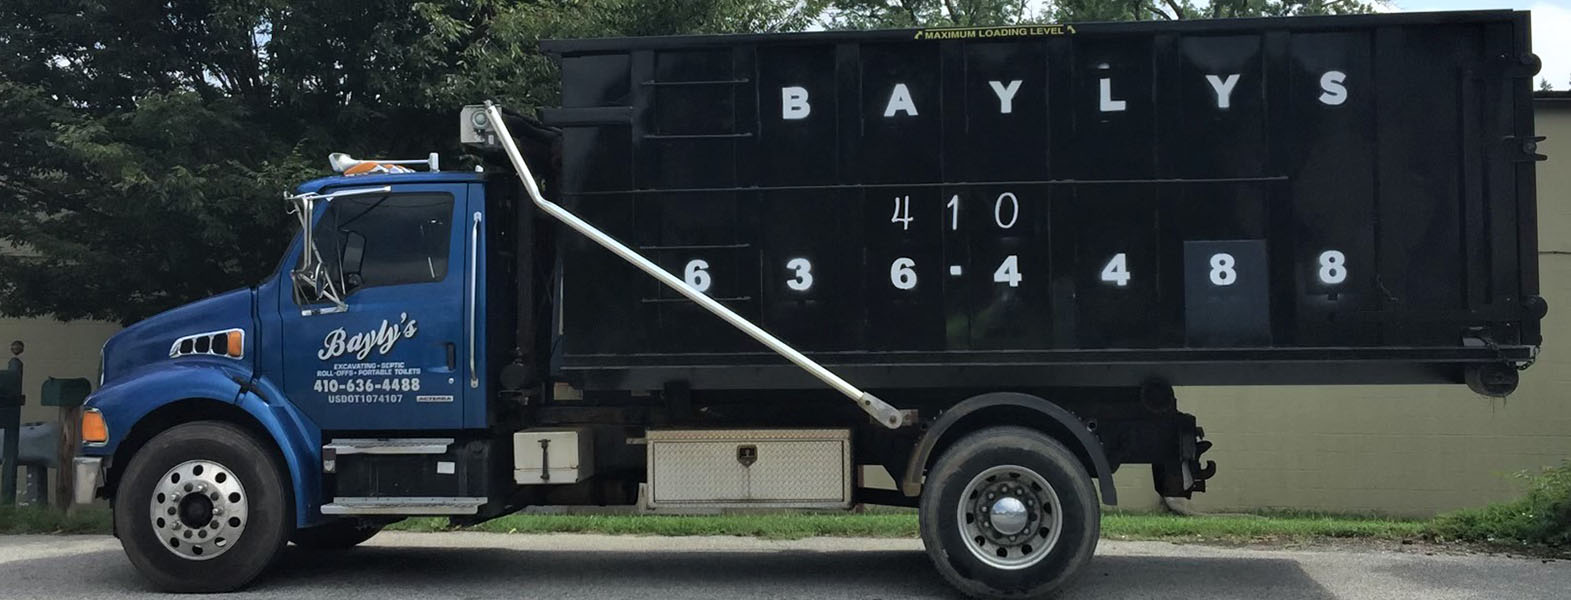 Edgewater Septic Tank Cleaning, Septic Company and Dumpster Cleaning